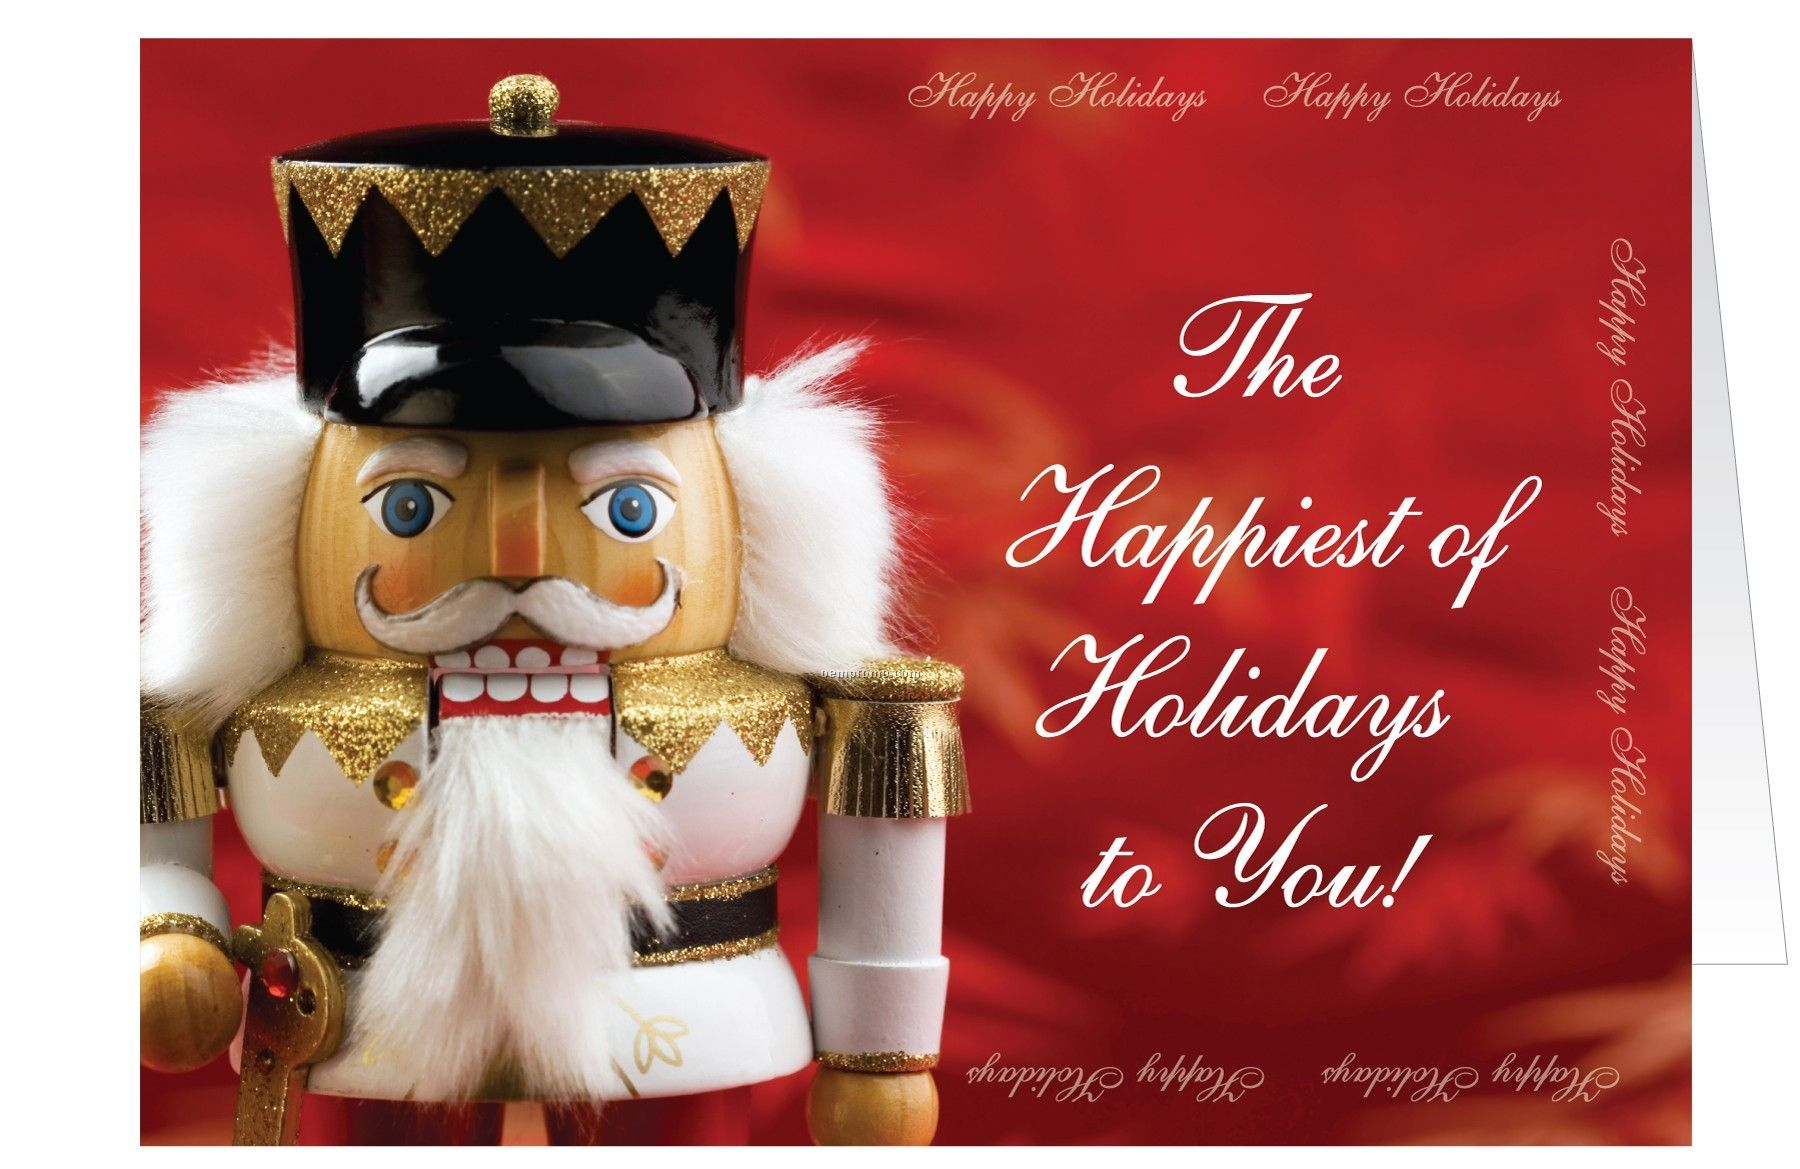 Foundation Of Friendship Holiday Card W/ Lined Envelope